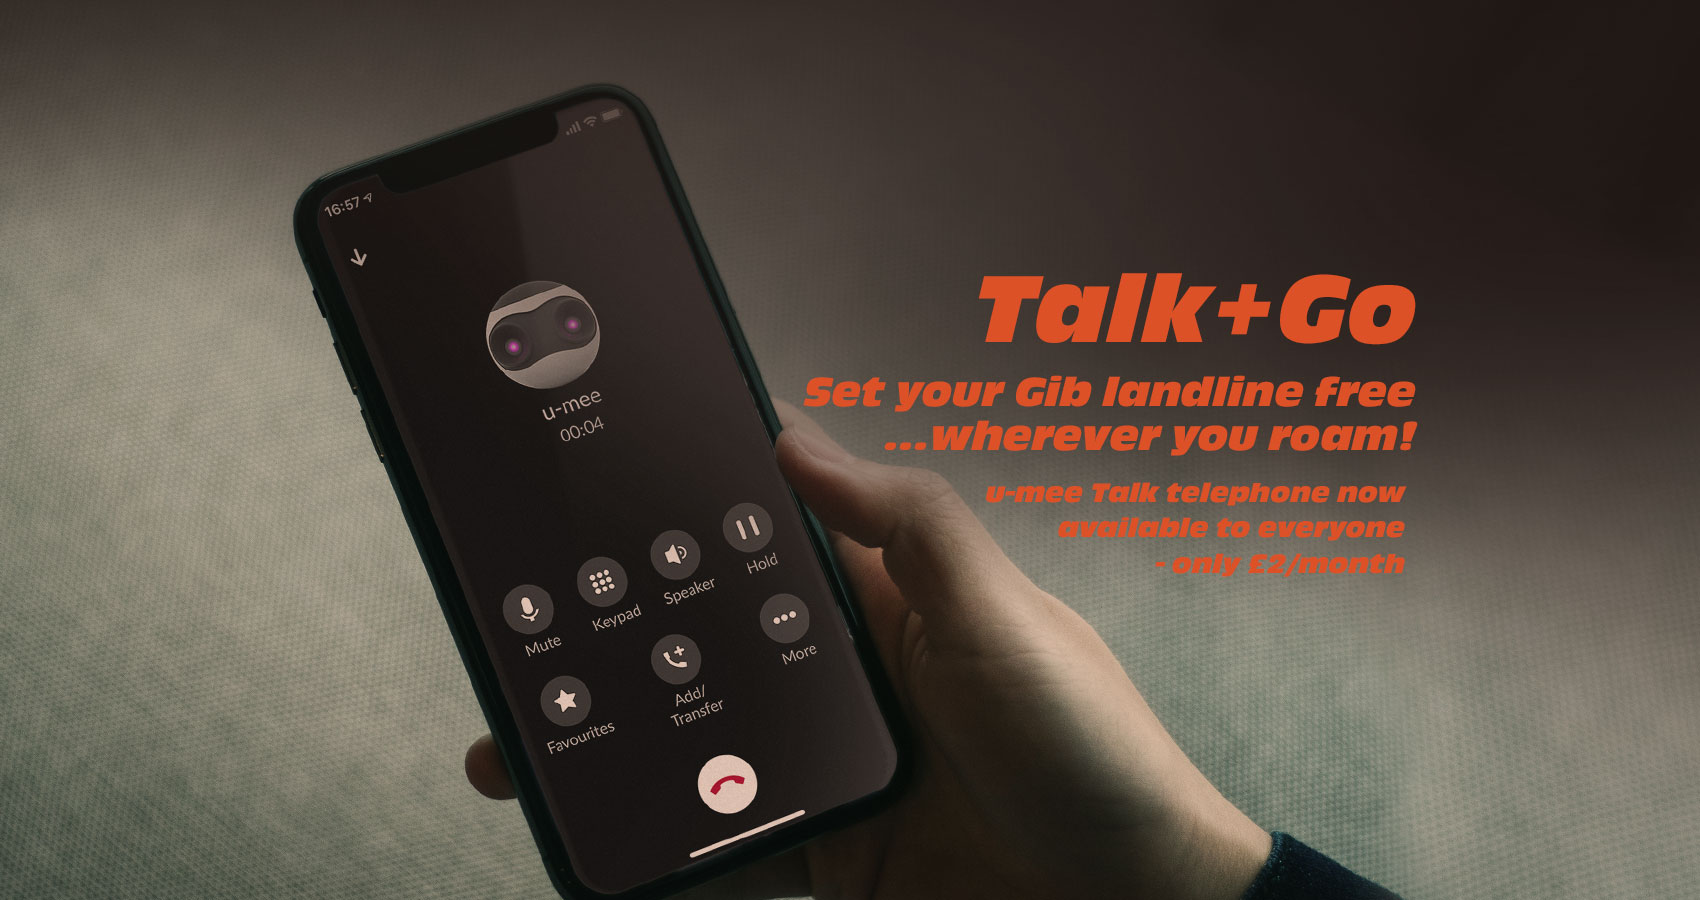 buy u-mee Talk+go now